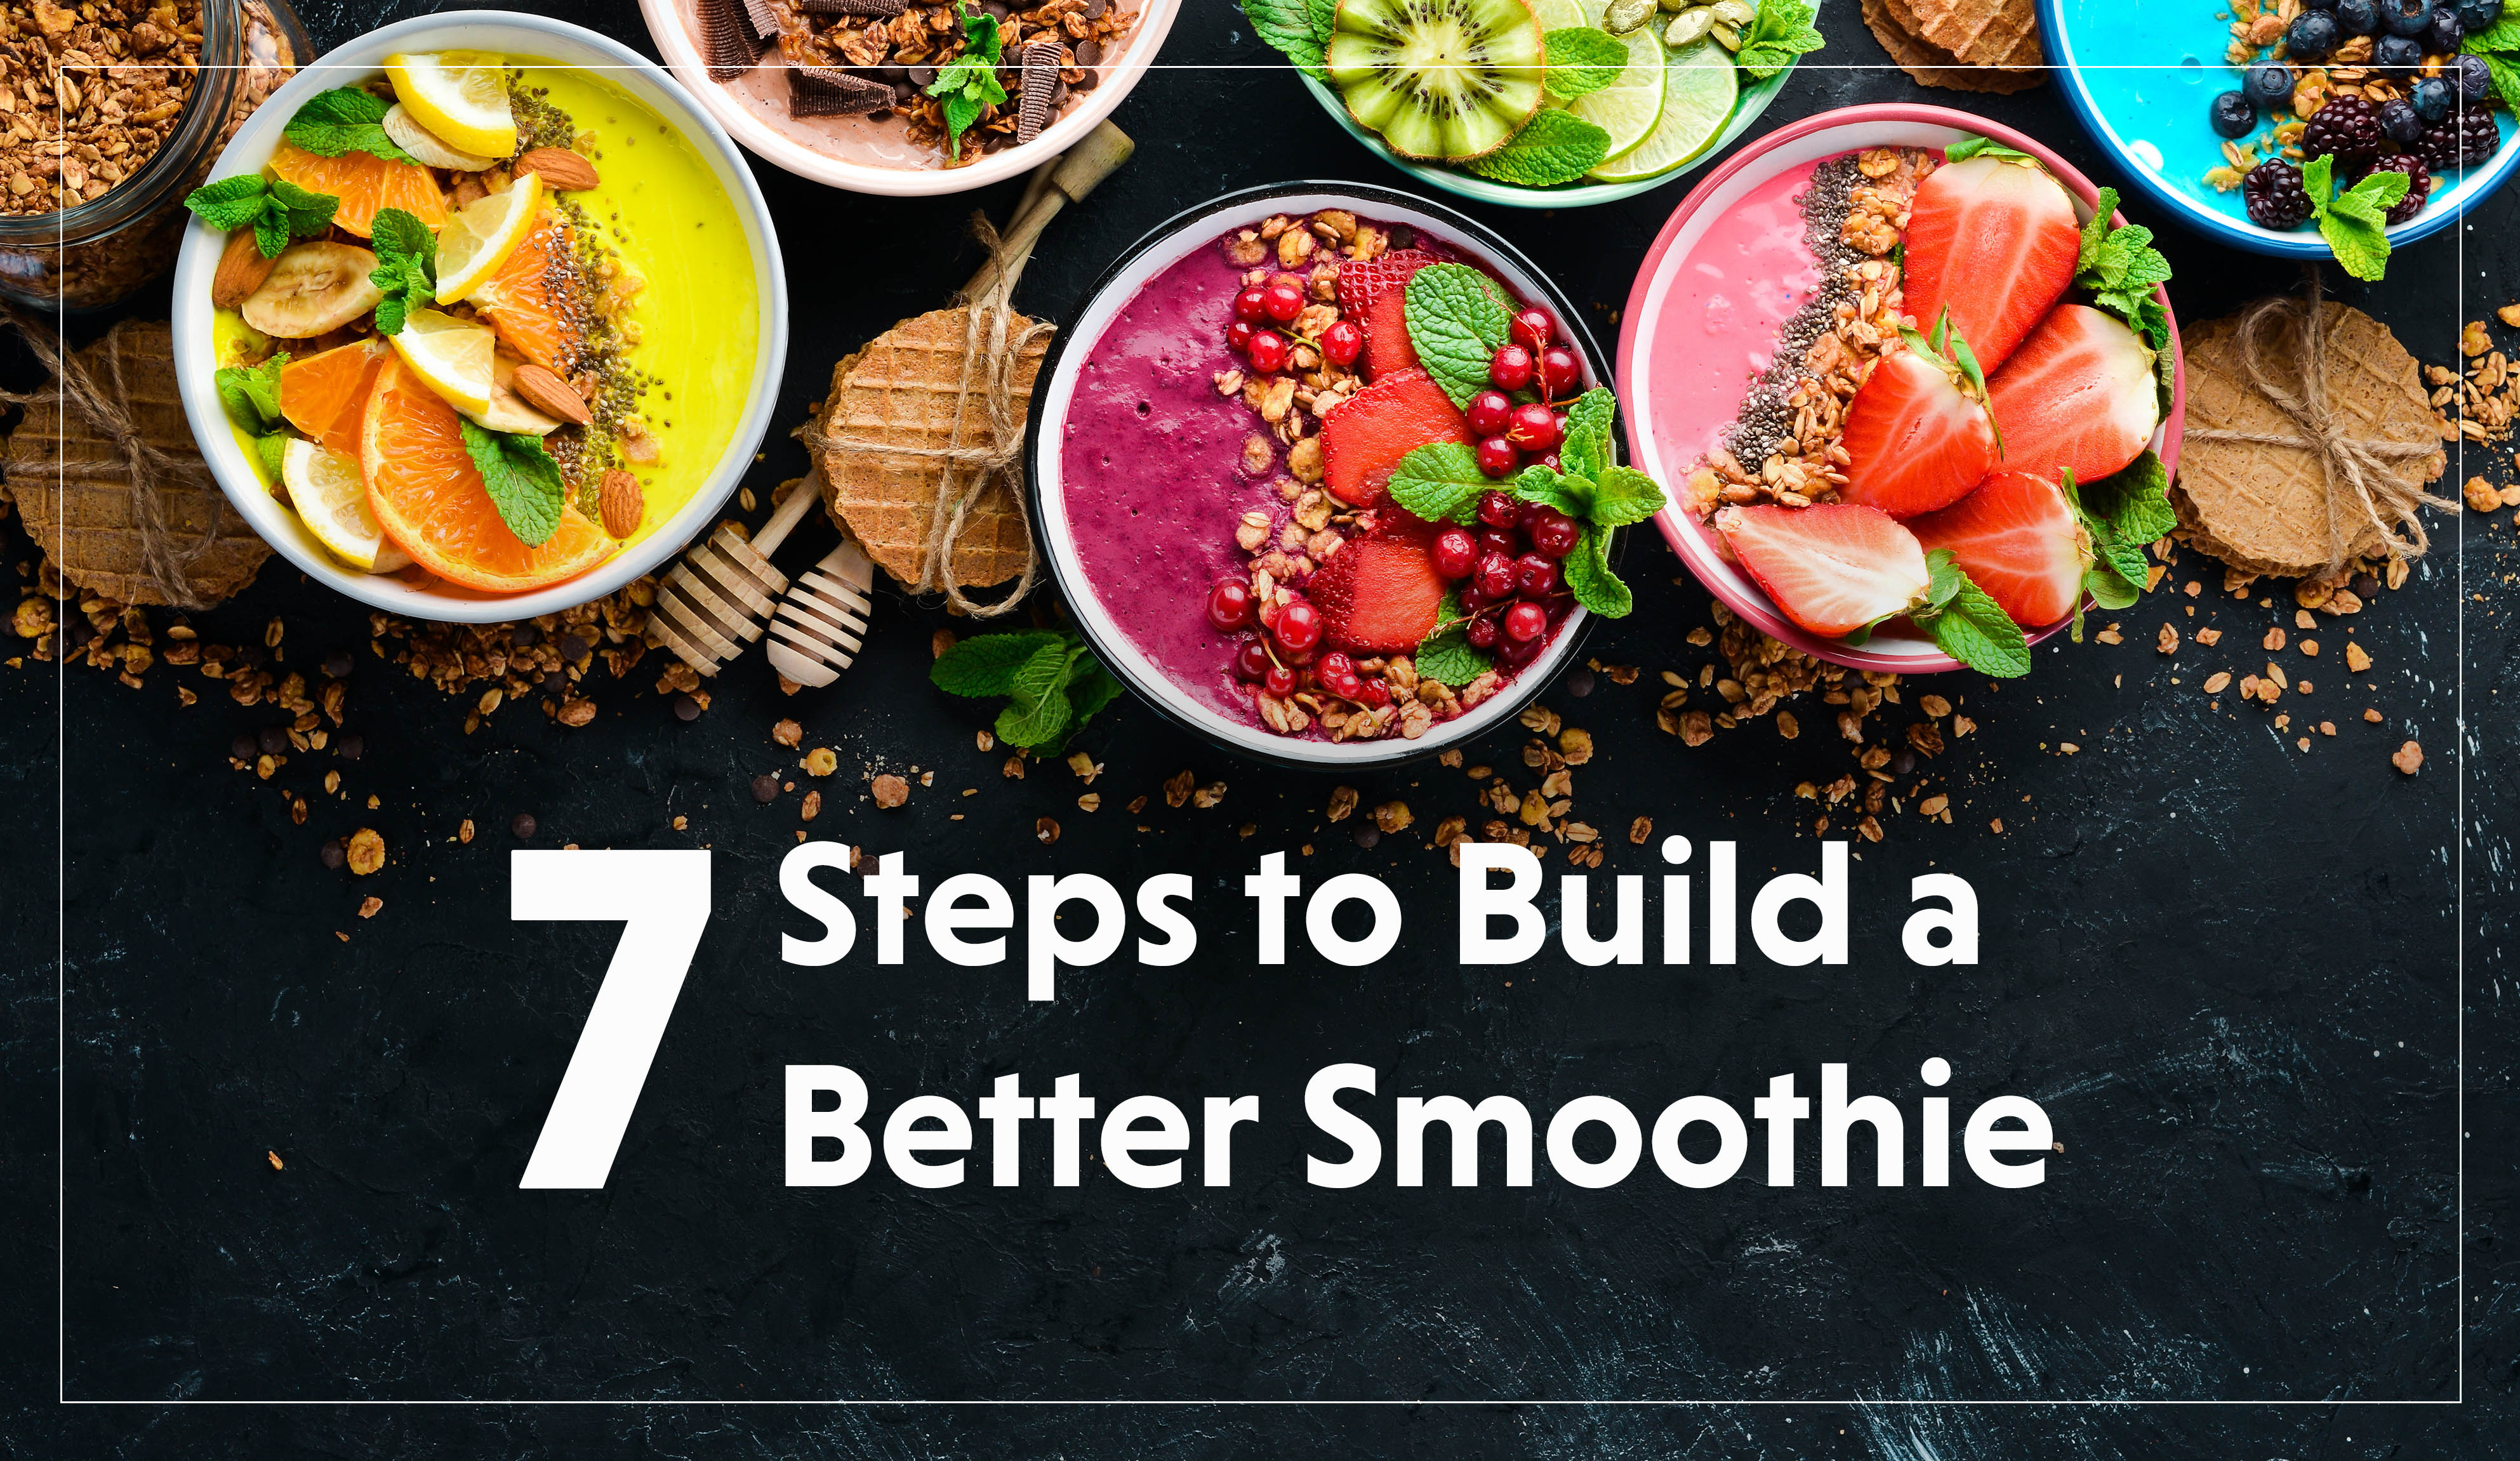 7 Steps to Build a Better Smoothie